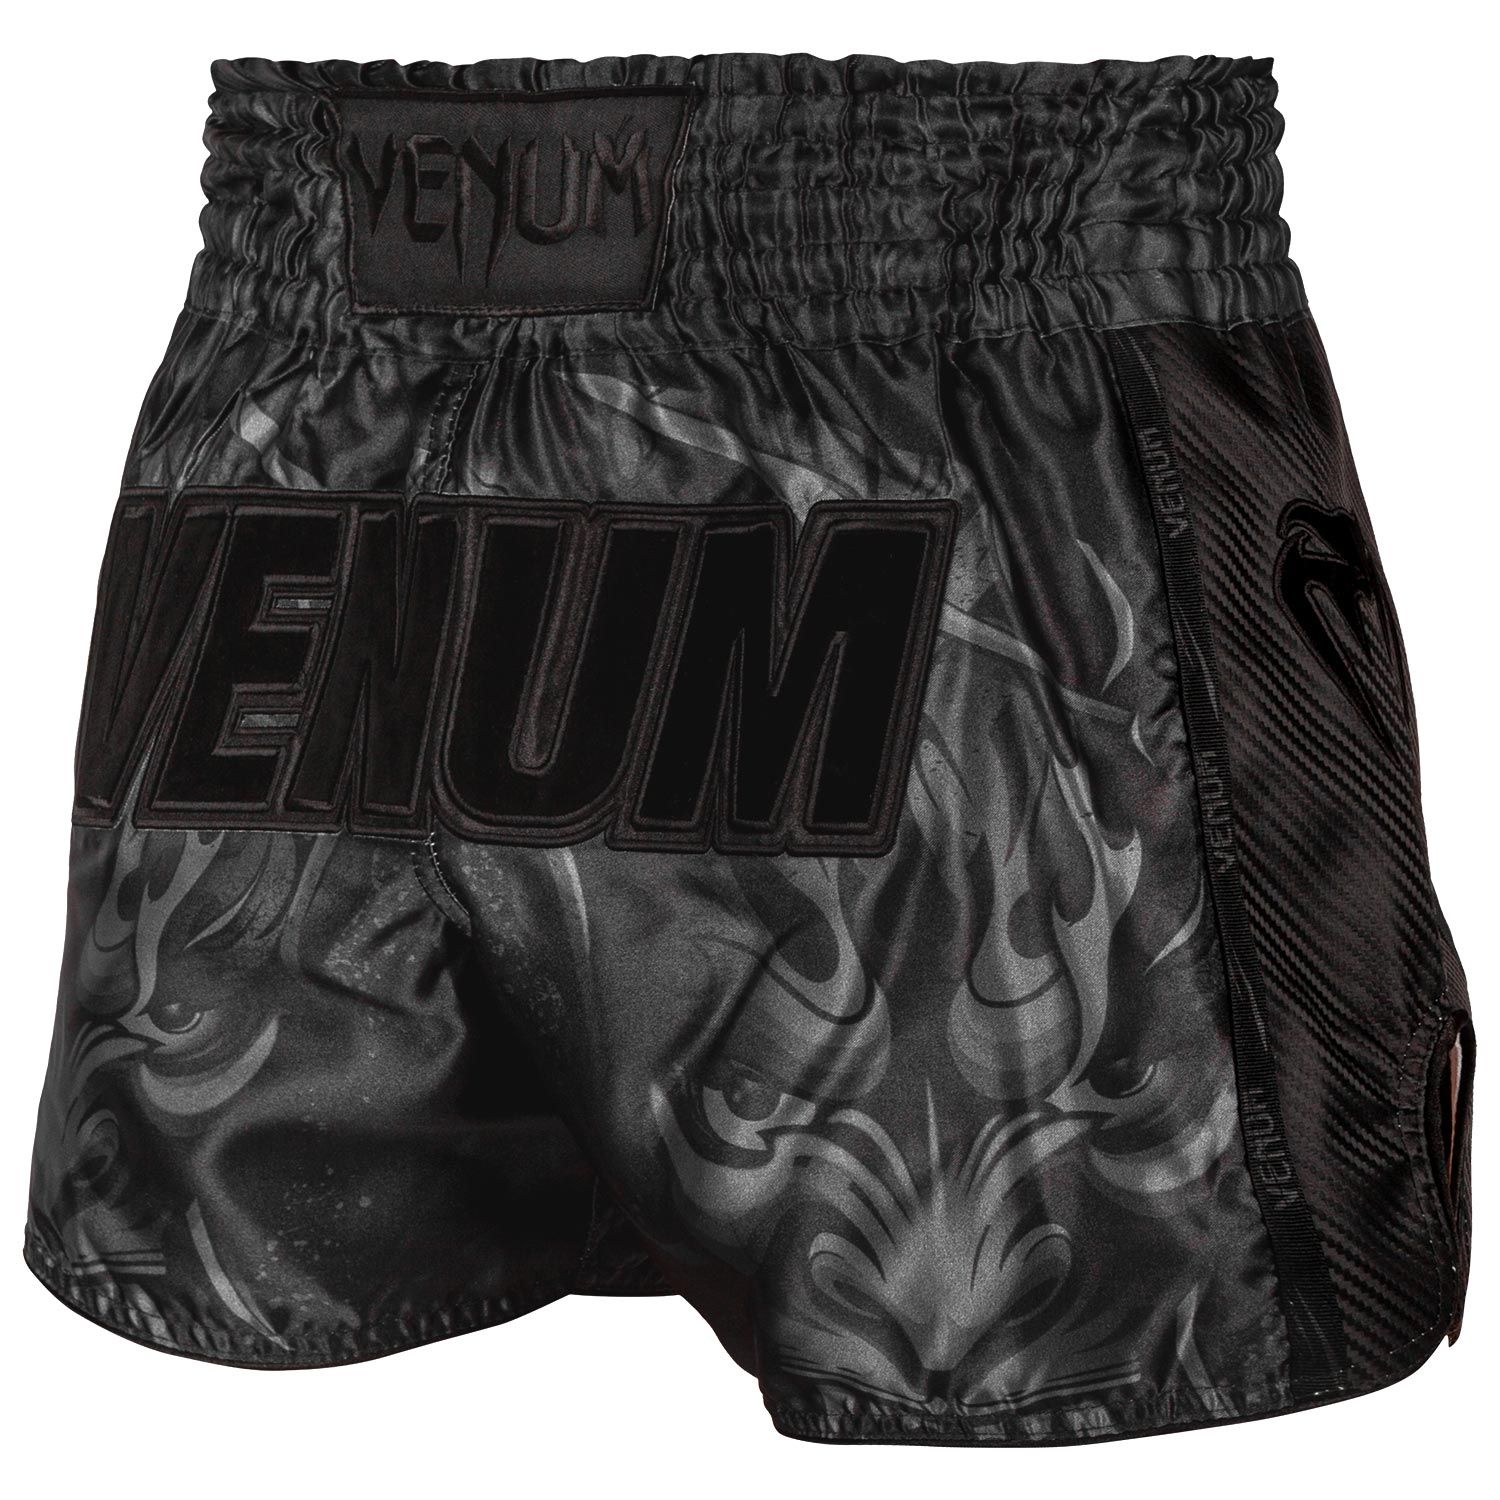 Venum Devil Muay Thai Shorts - Black/Black